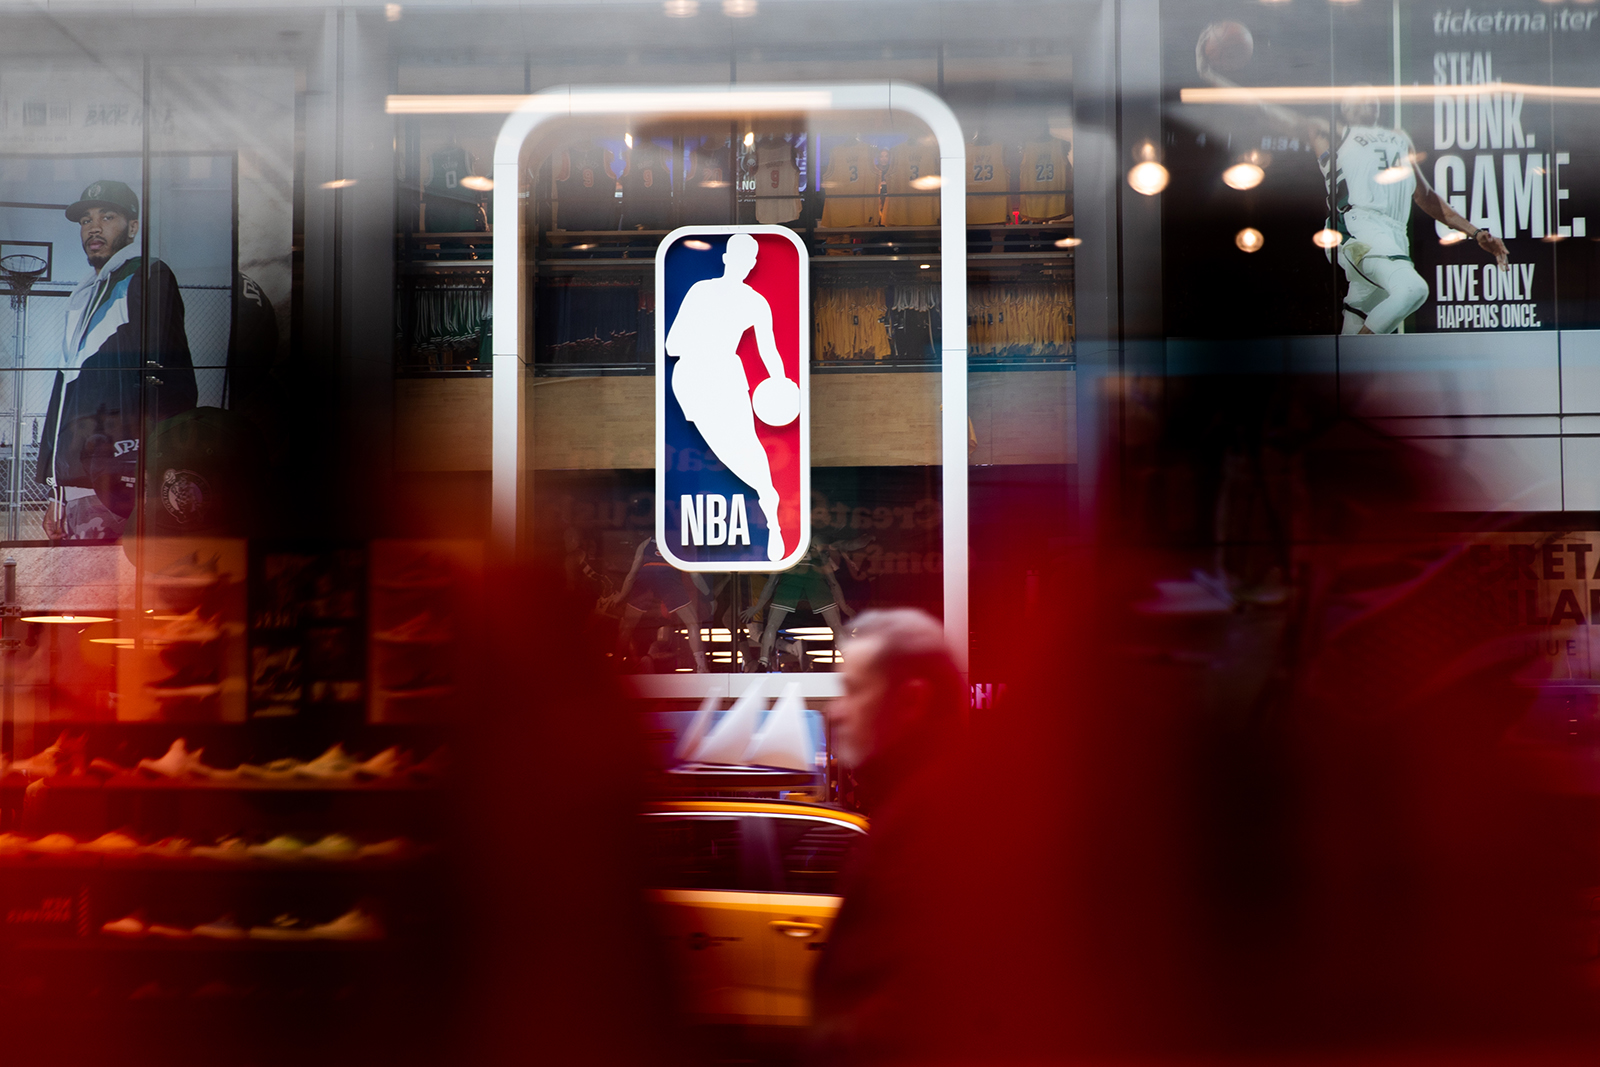 An NBA logo is shown at the 5th Avenue NBA store on March 12, 2020, in New York City.